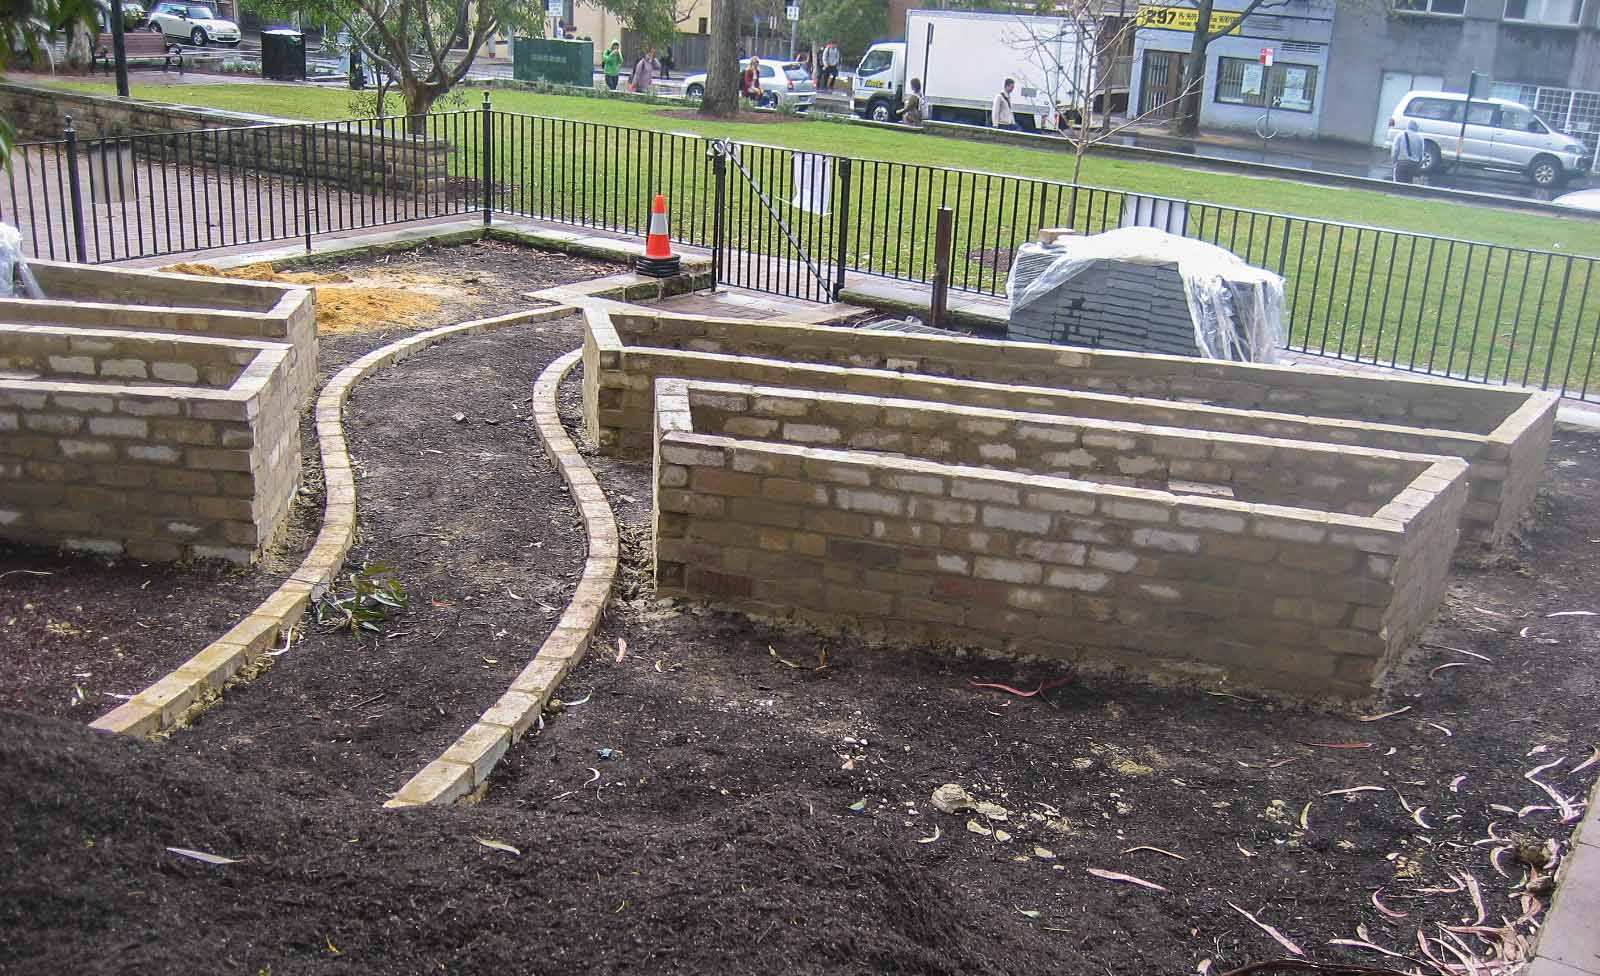 Path and beds in place, waiting for plants!